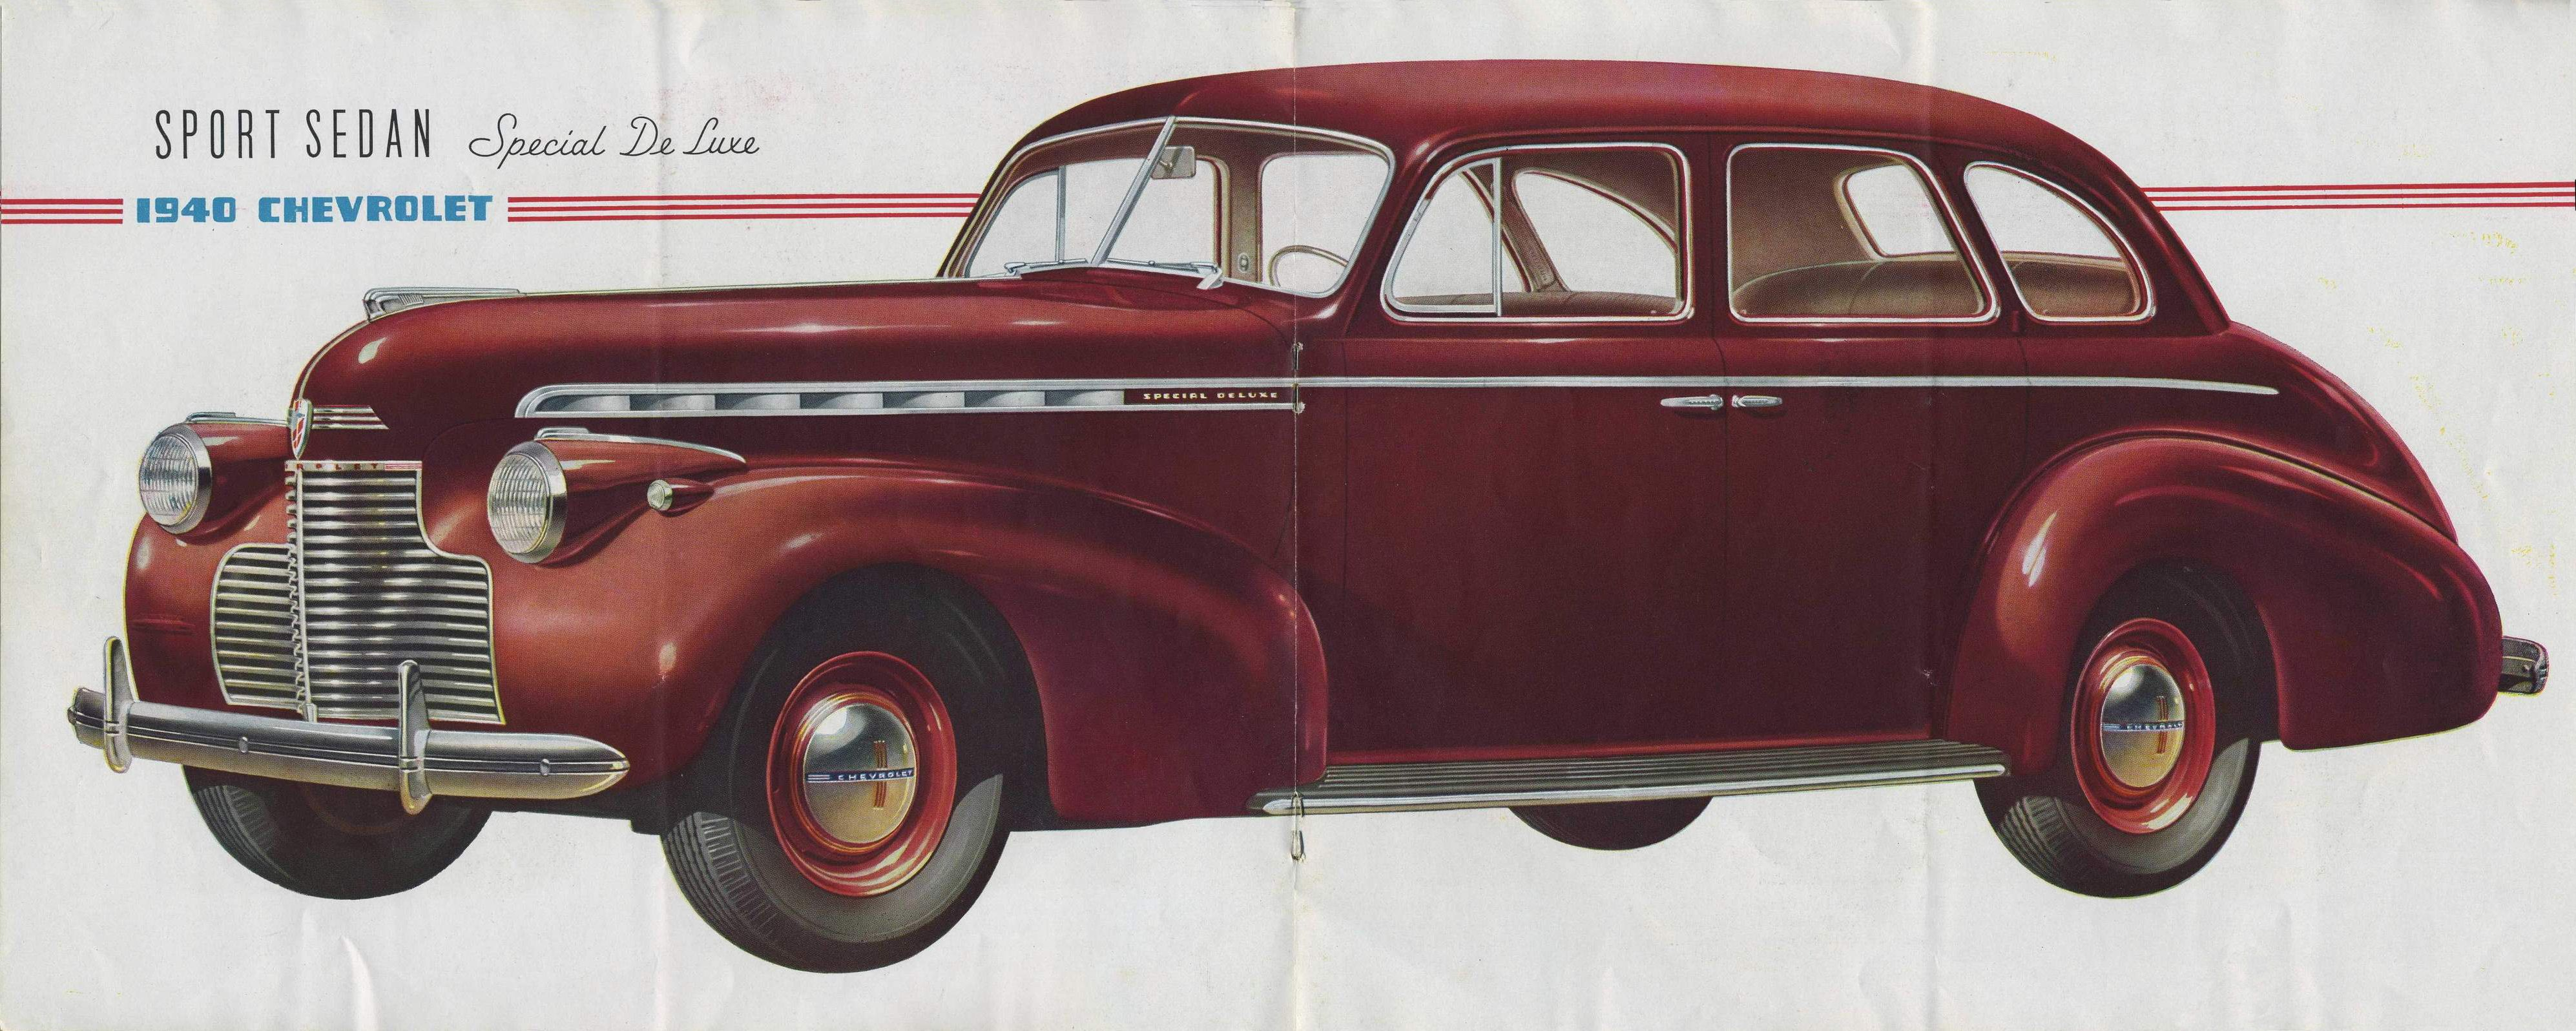 1940 chevrolet 4 door sedan special deluxe and standard master